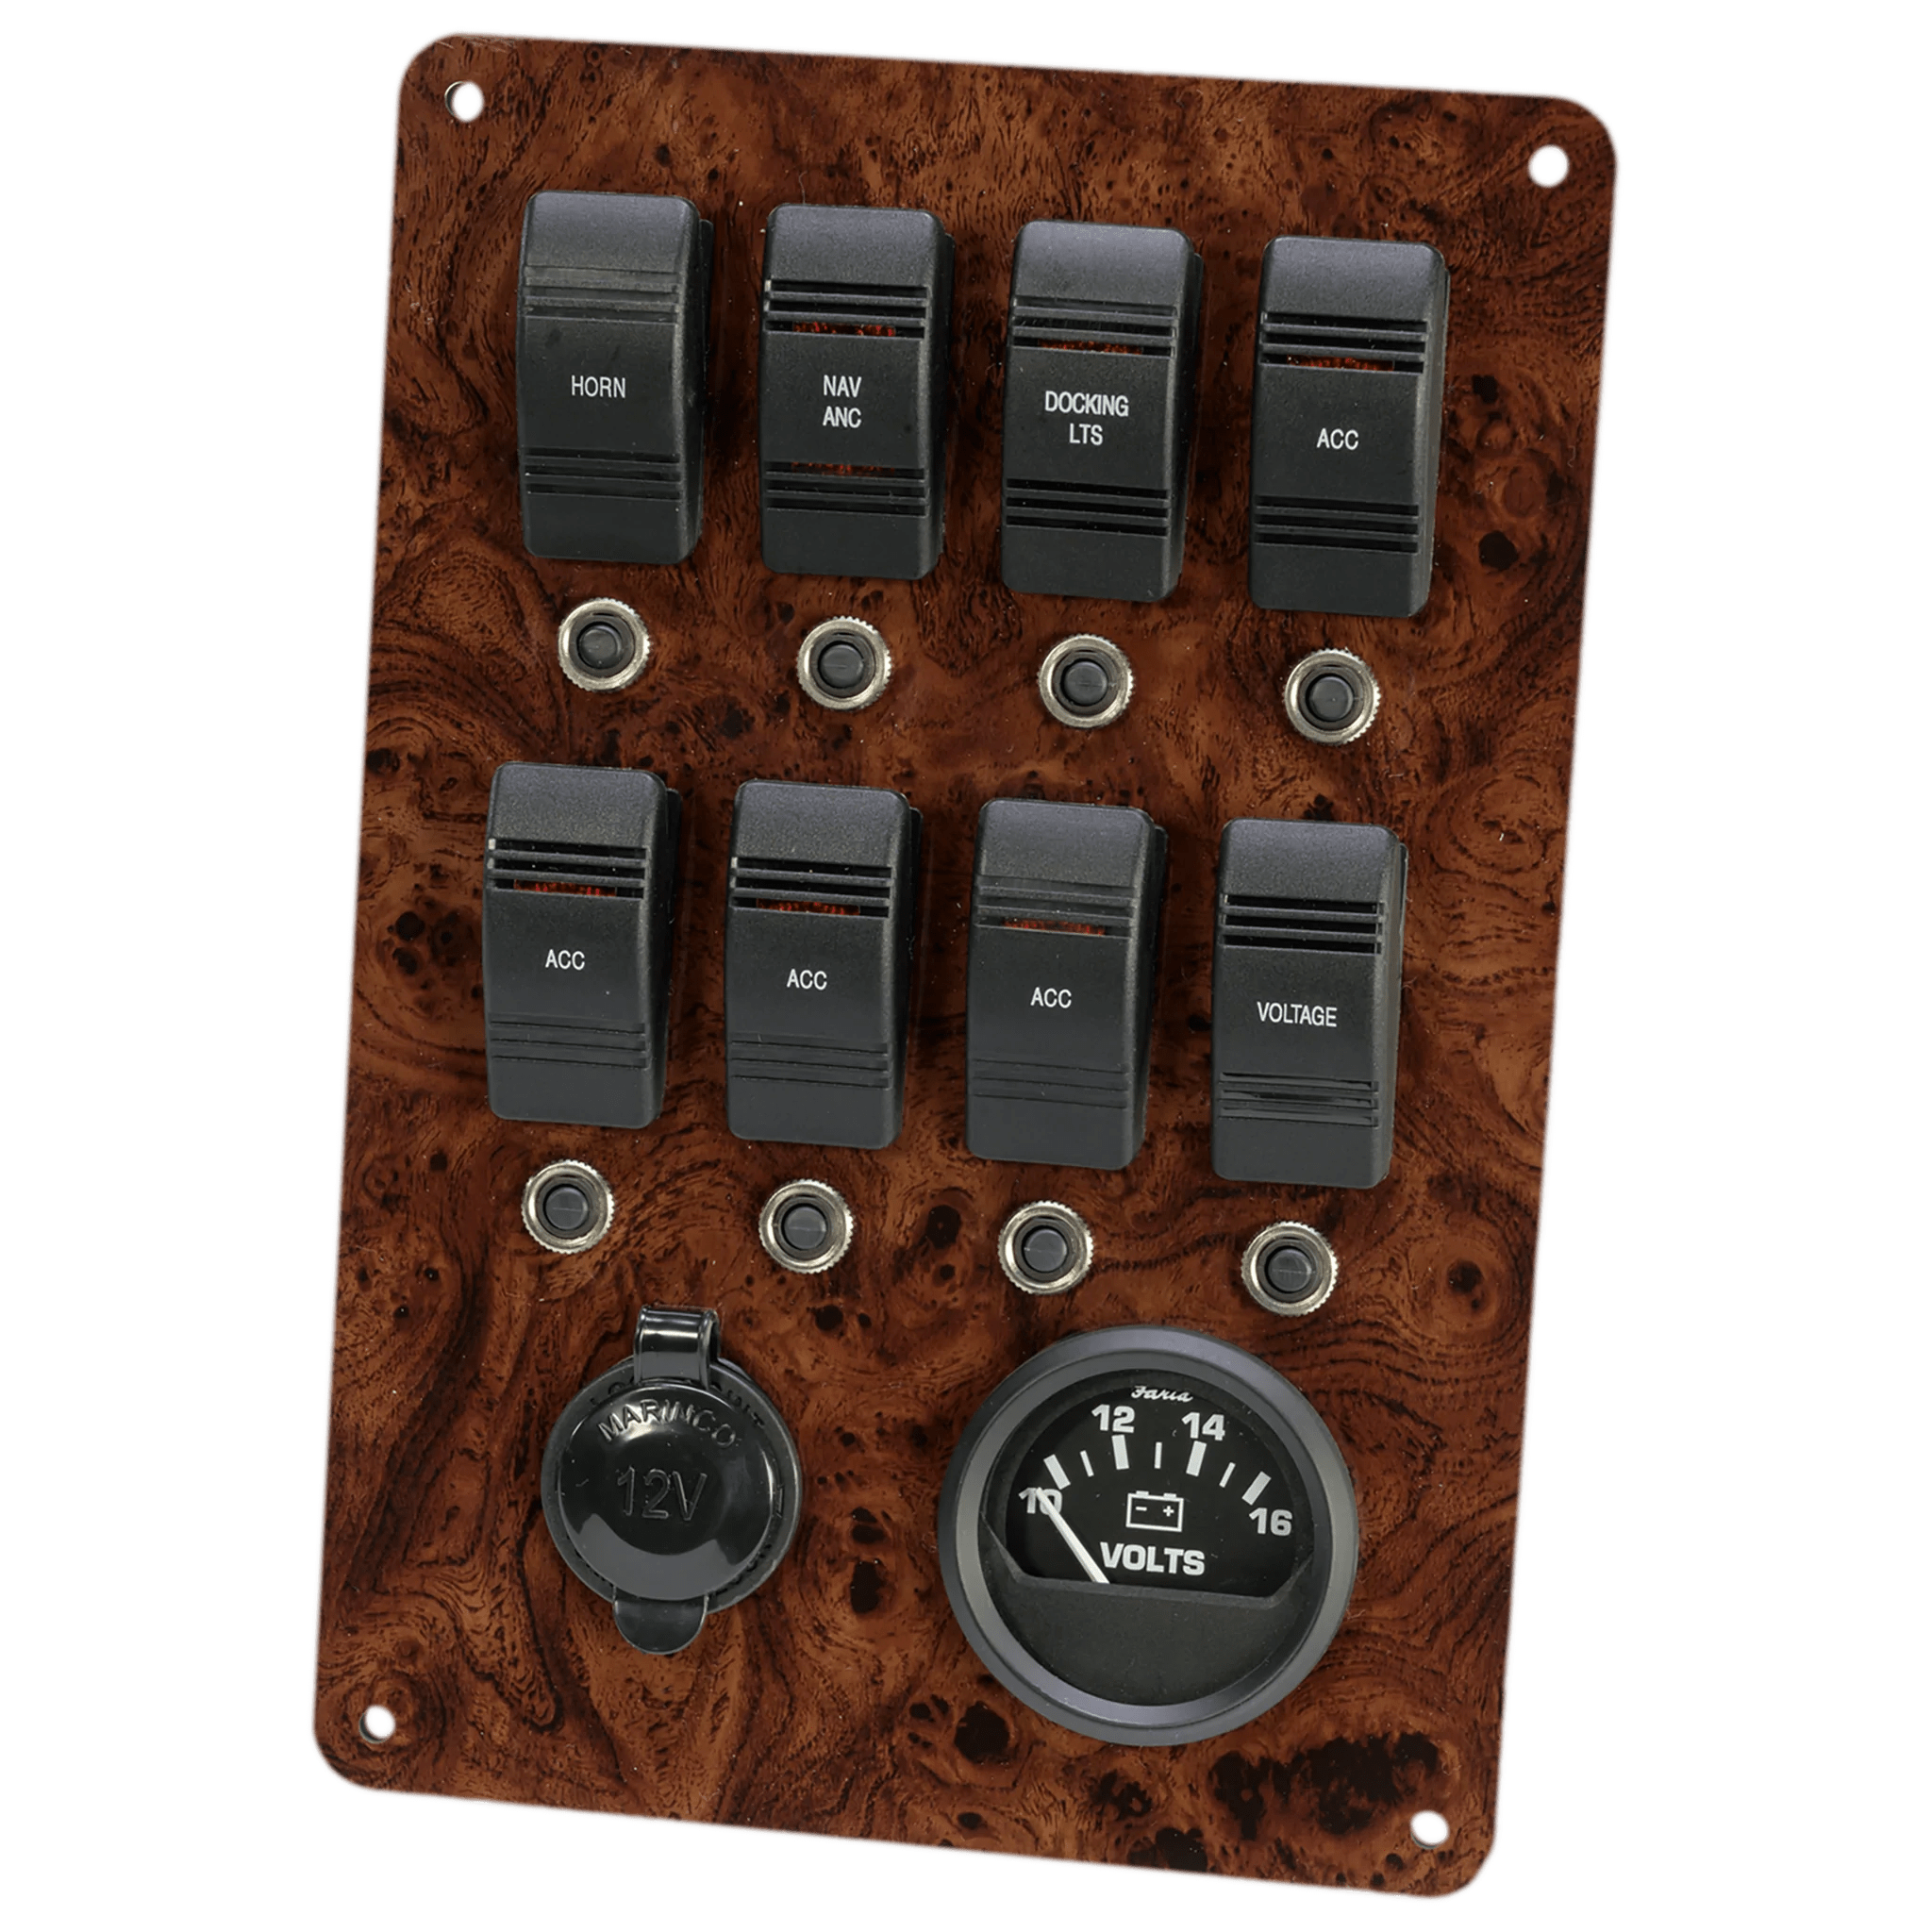 hight resolution of fully wired fused and loaded switch panel with 12 volt outlet and battery meter